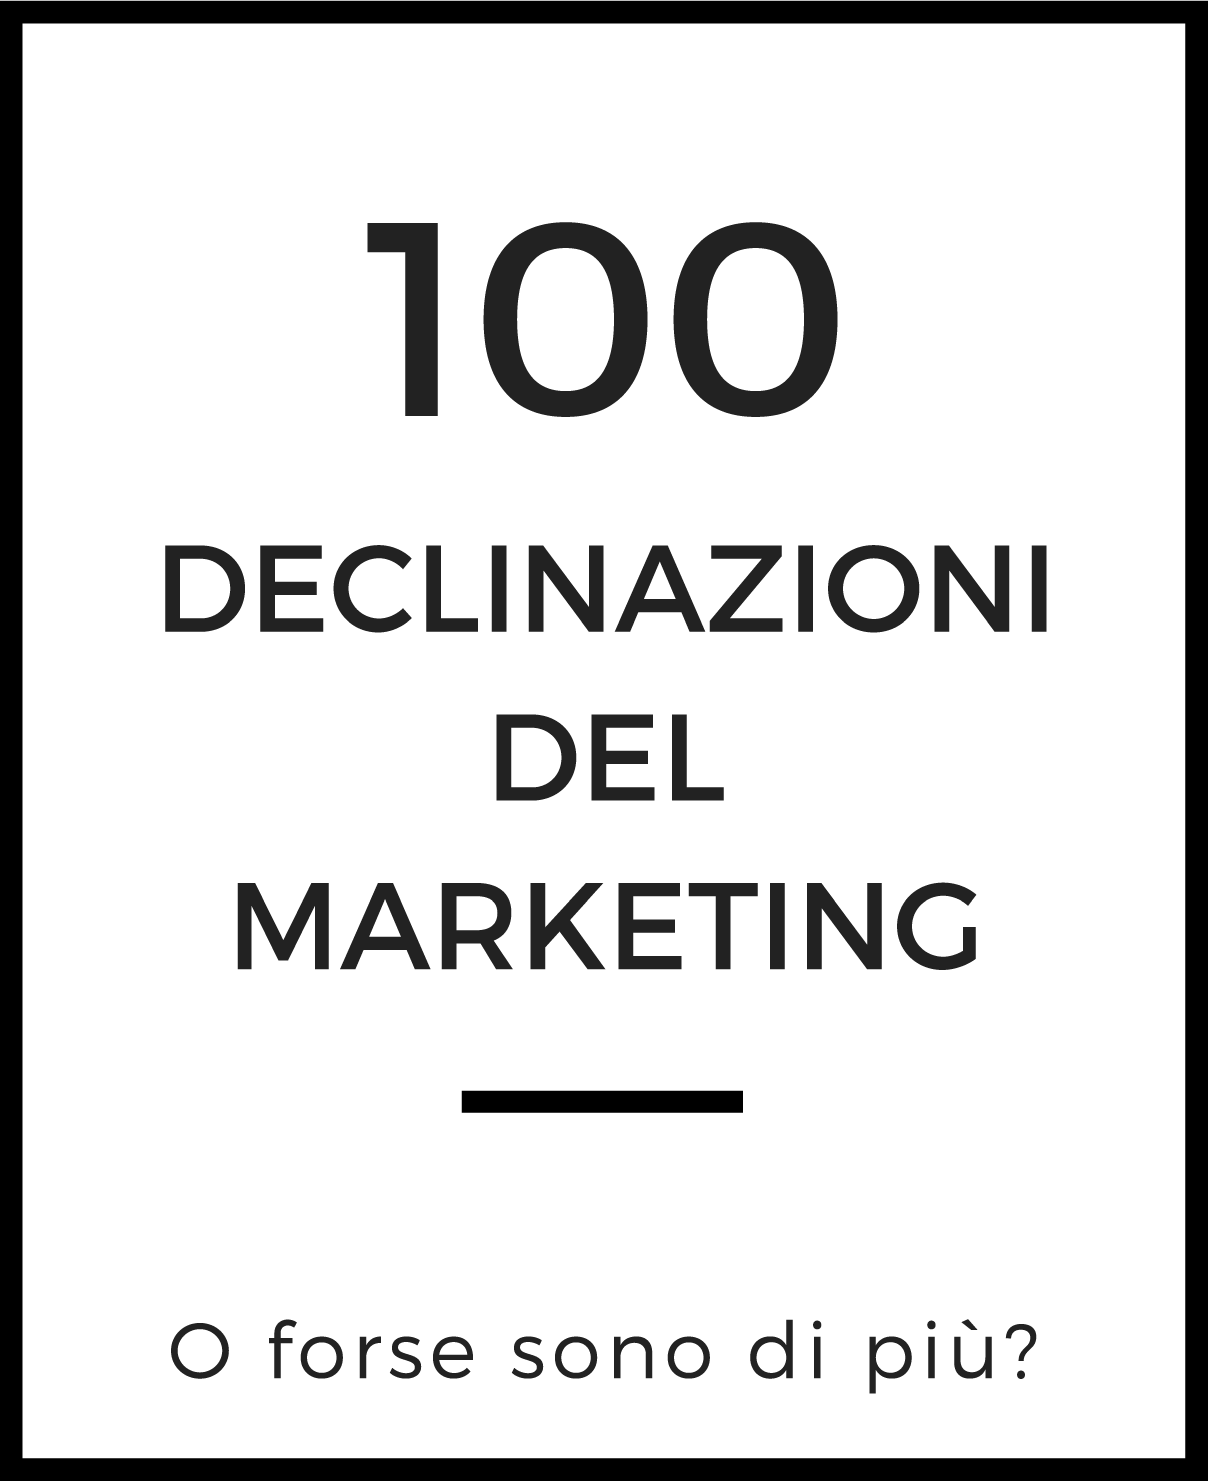 100 declinazioni del marketing